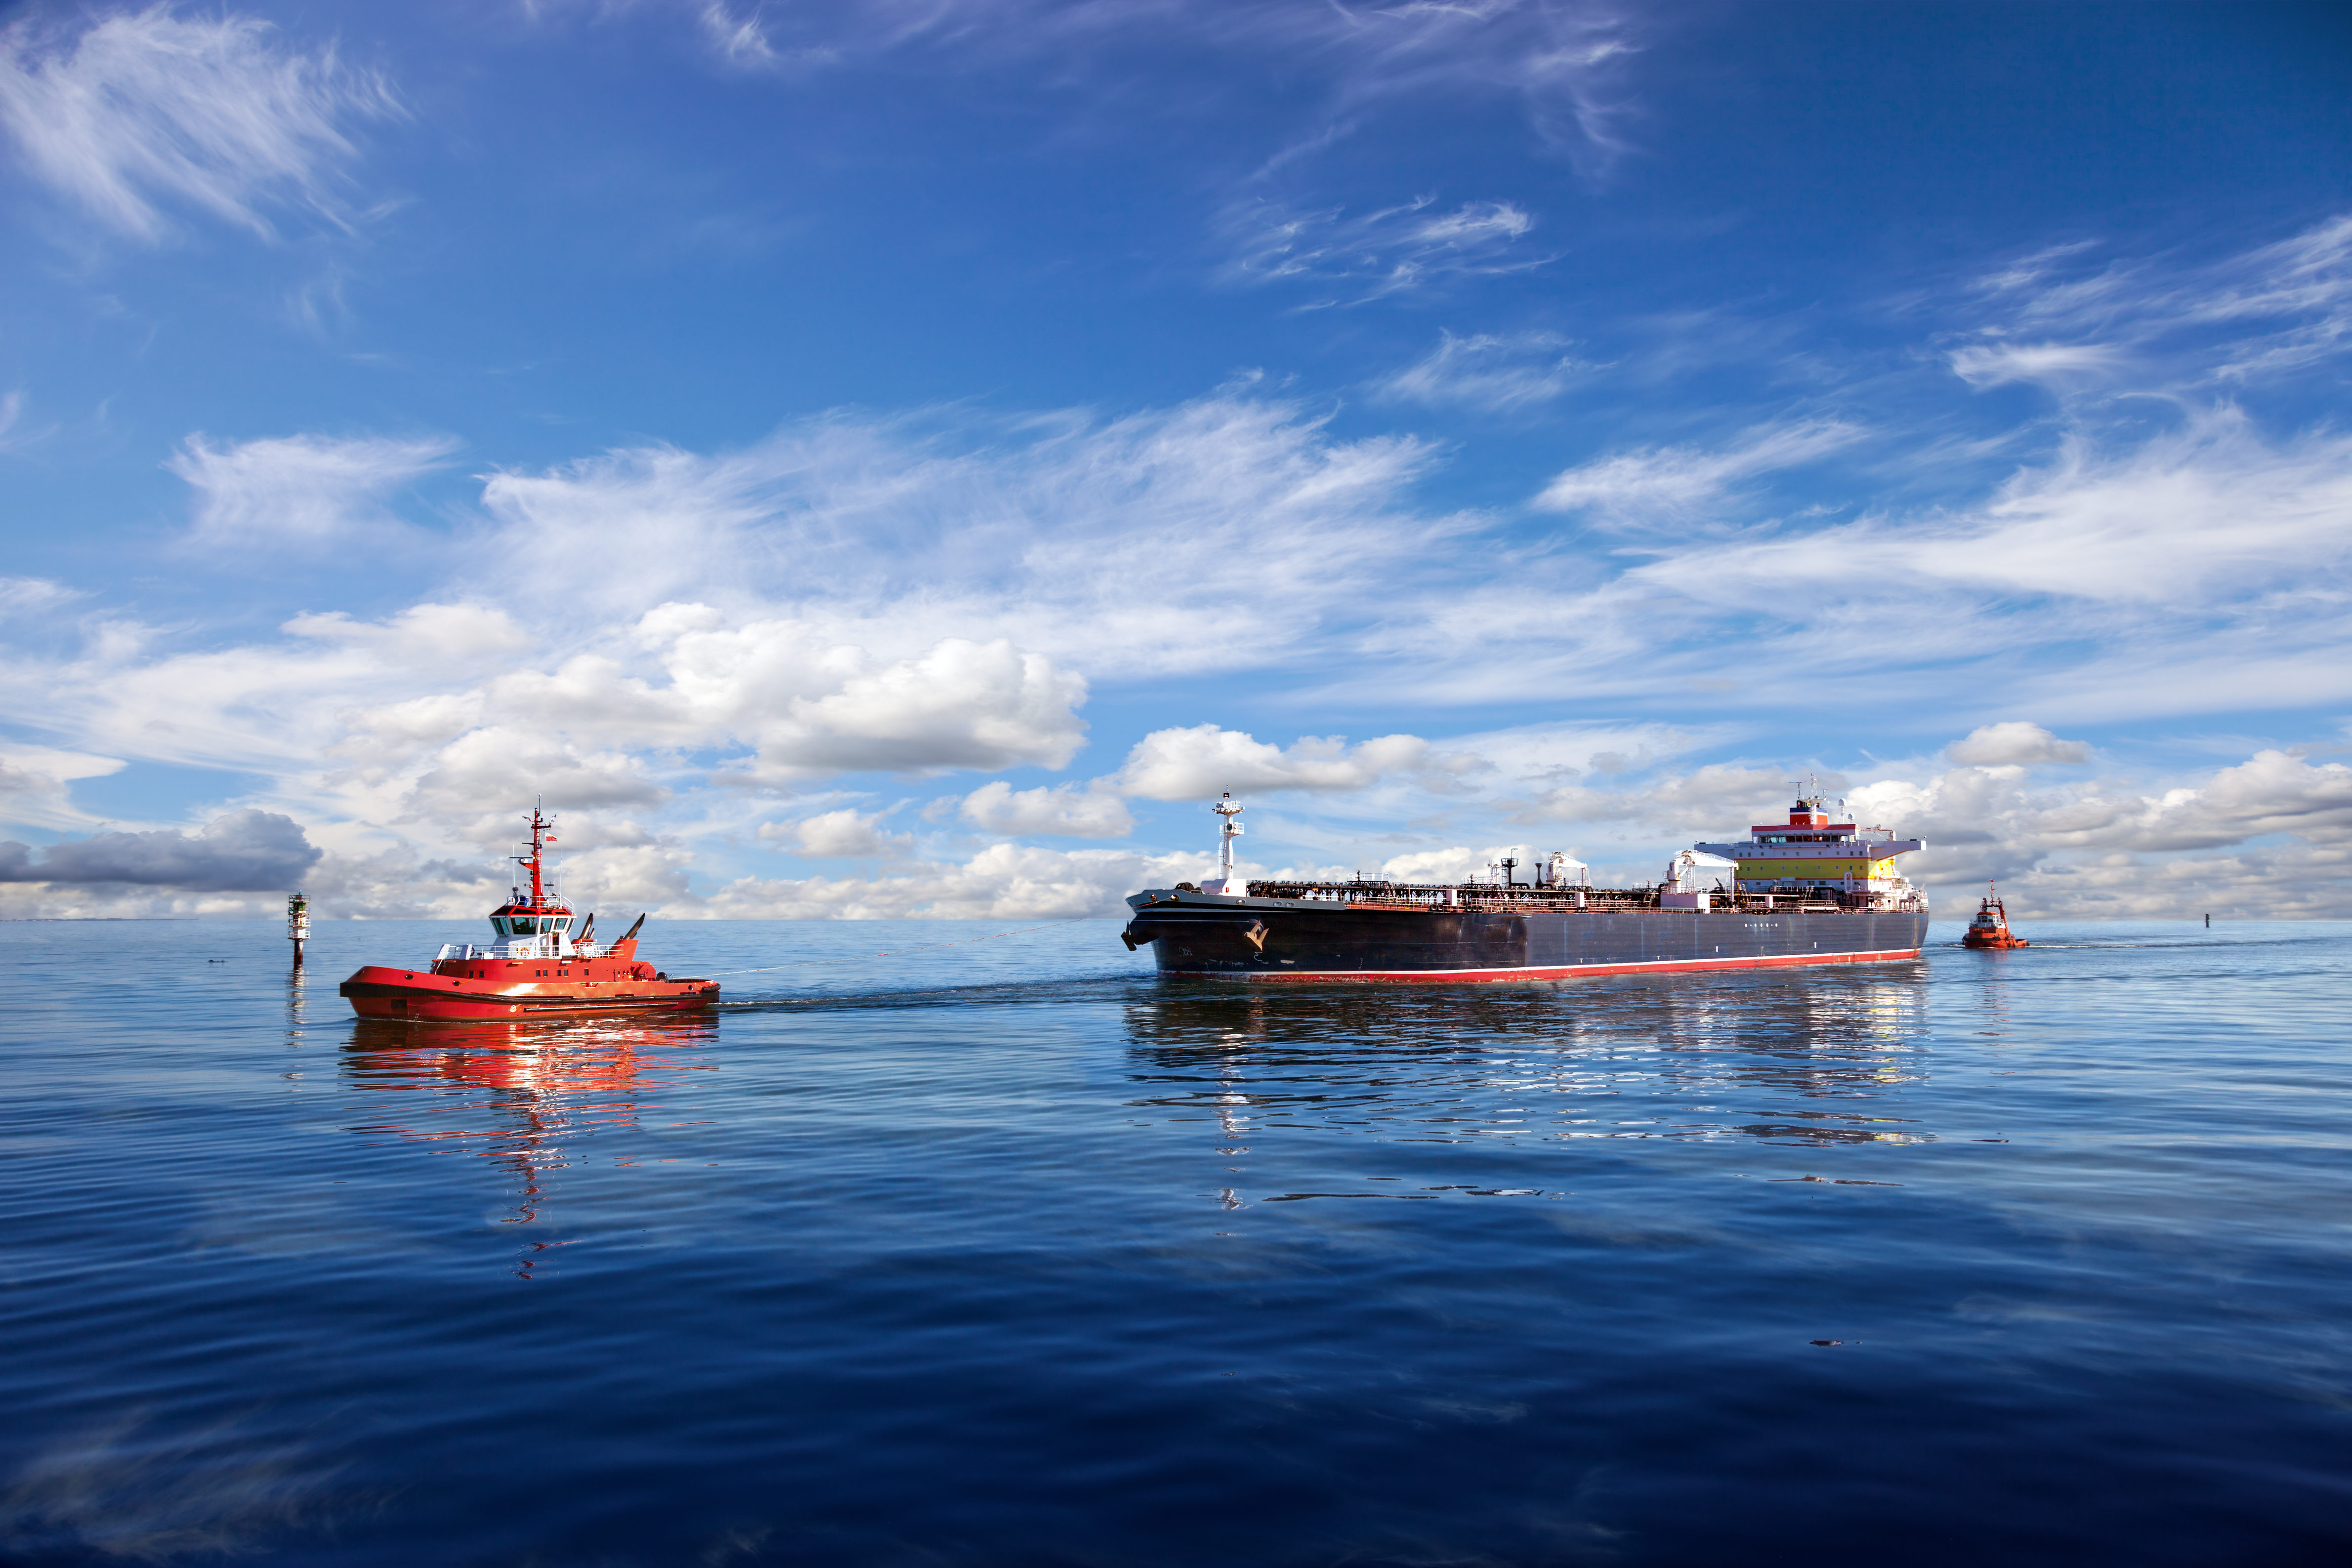 Venezuela doesn't have enough money to get tankers out to international waters. Image courtesy of Adobe Stock.